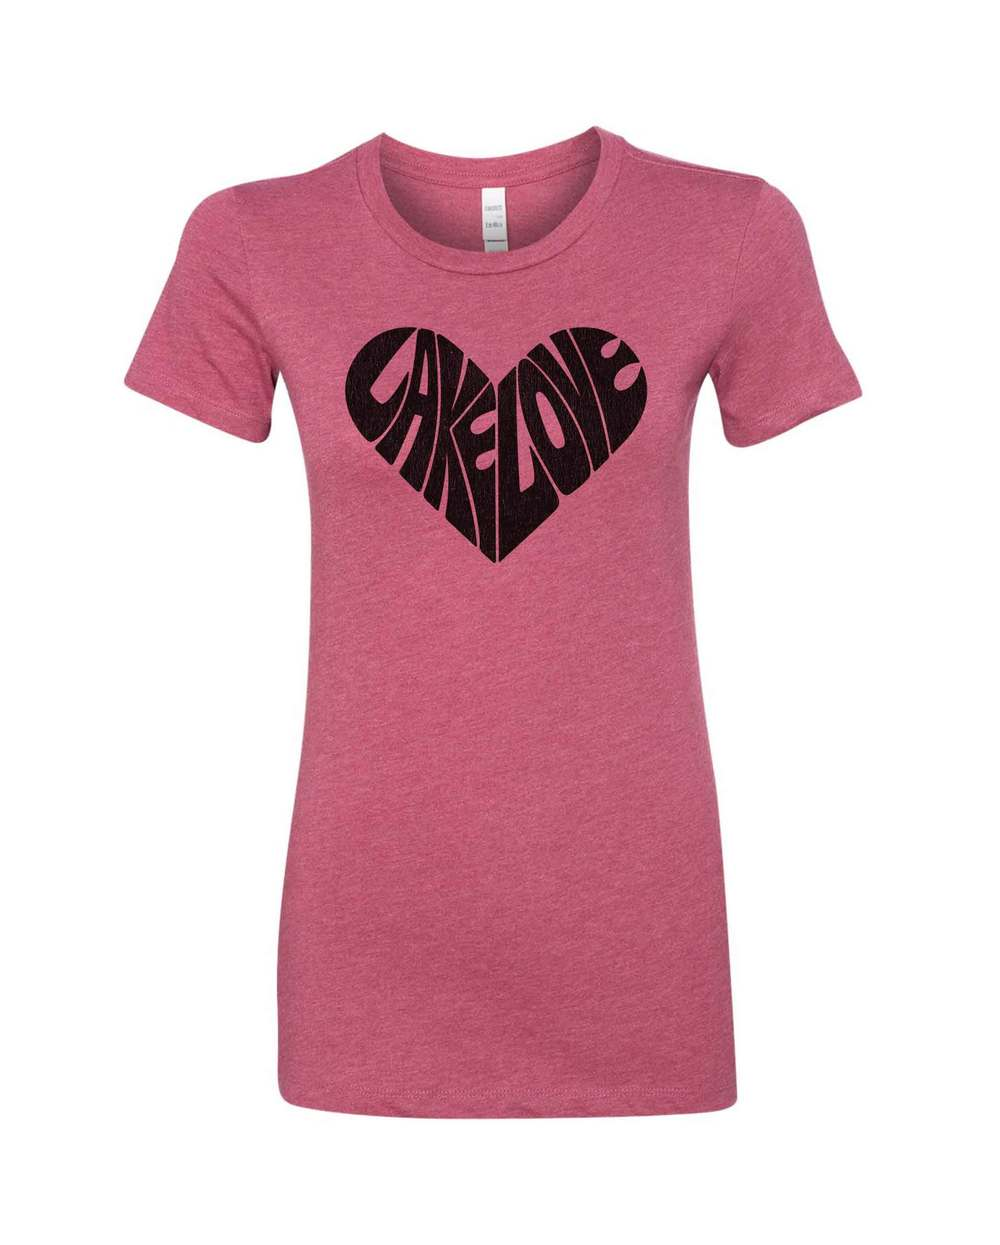 LakeLuster_Tshirts_LakeLove_Ladies_6004_HeatherRaspberry_A.jpg